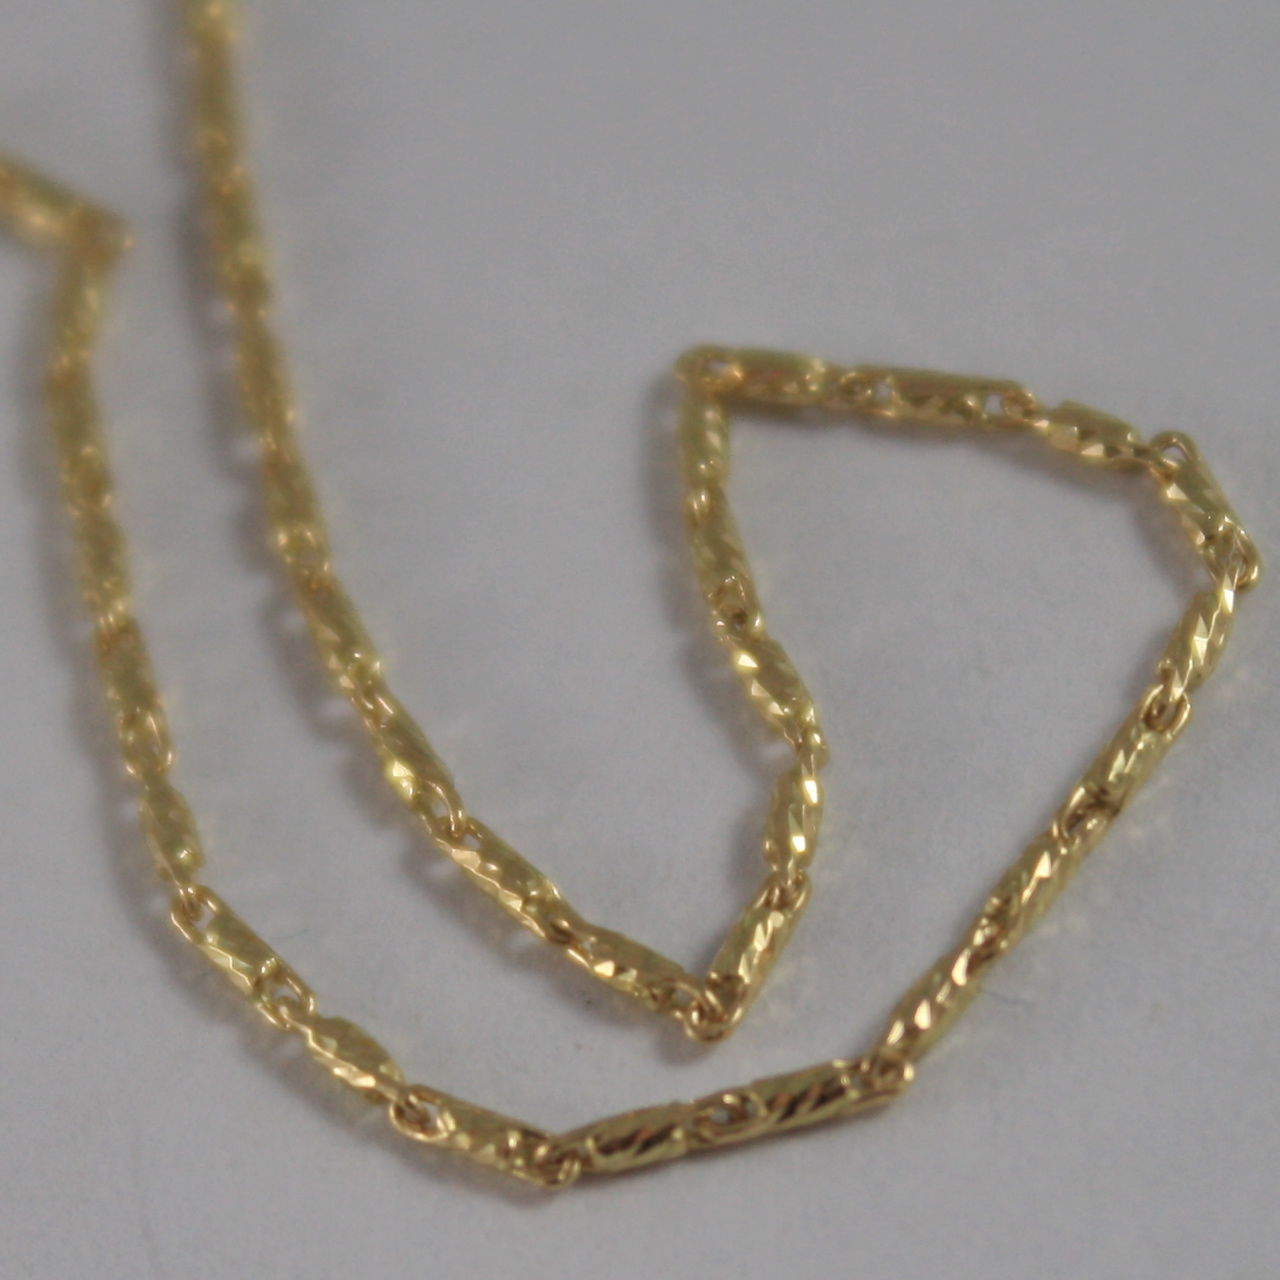 SOLID 18K YELLOW GOLD CHAIN NECKLACE, TUBE FACETED MESH 15.75 IN. MADE IN ITALY